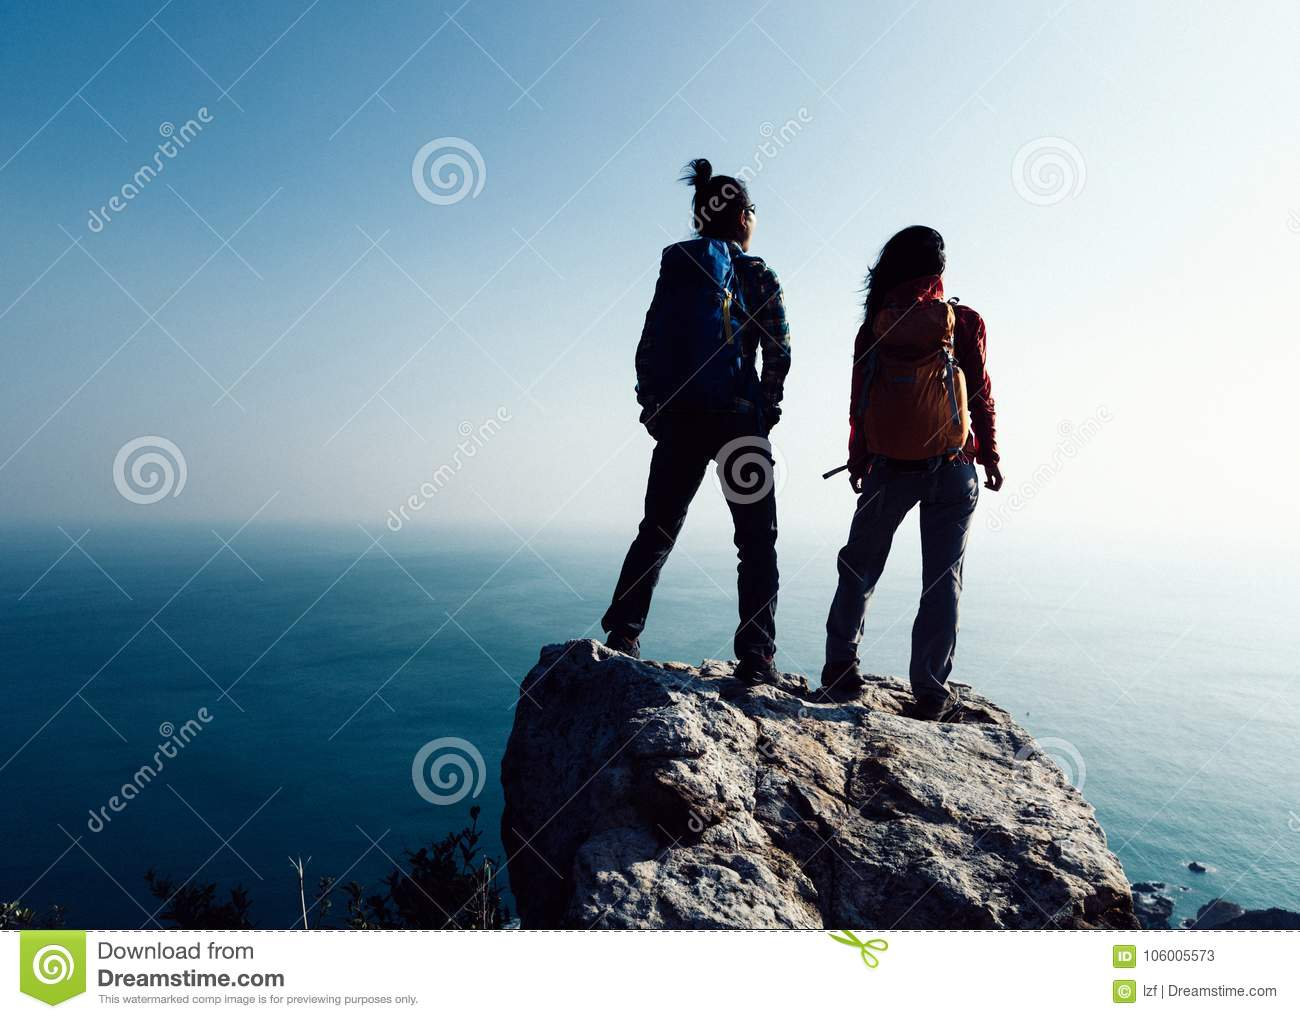 Hikers looking at the view on seaside mountain top rock edge